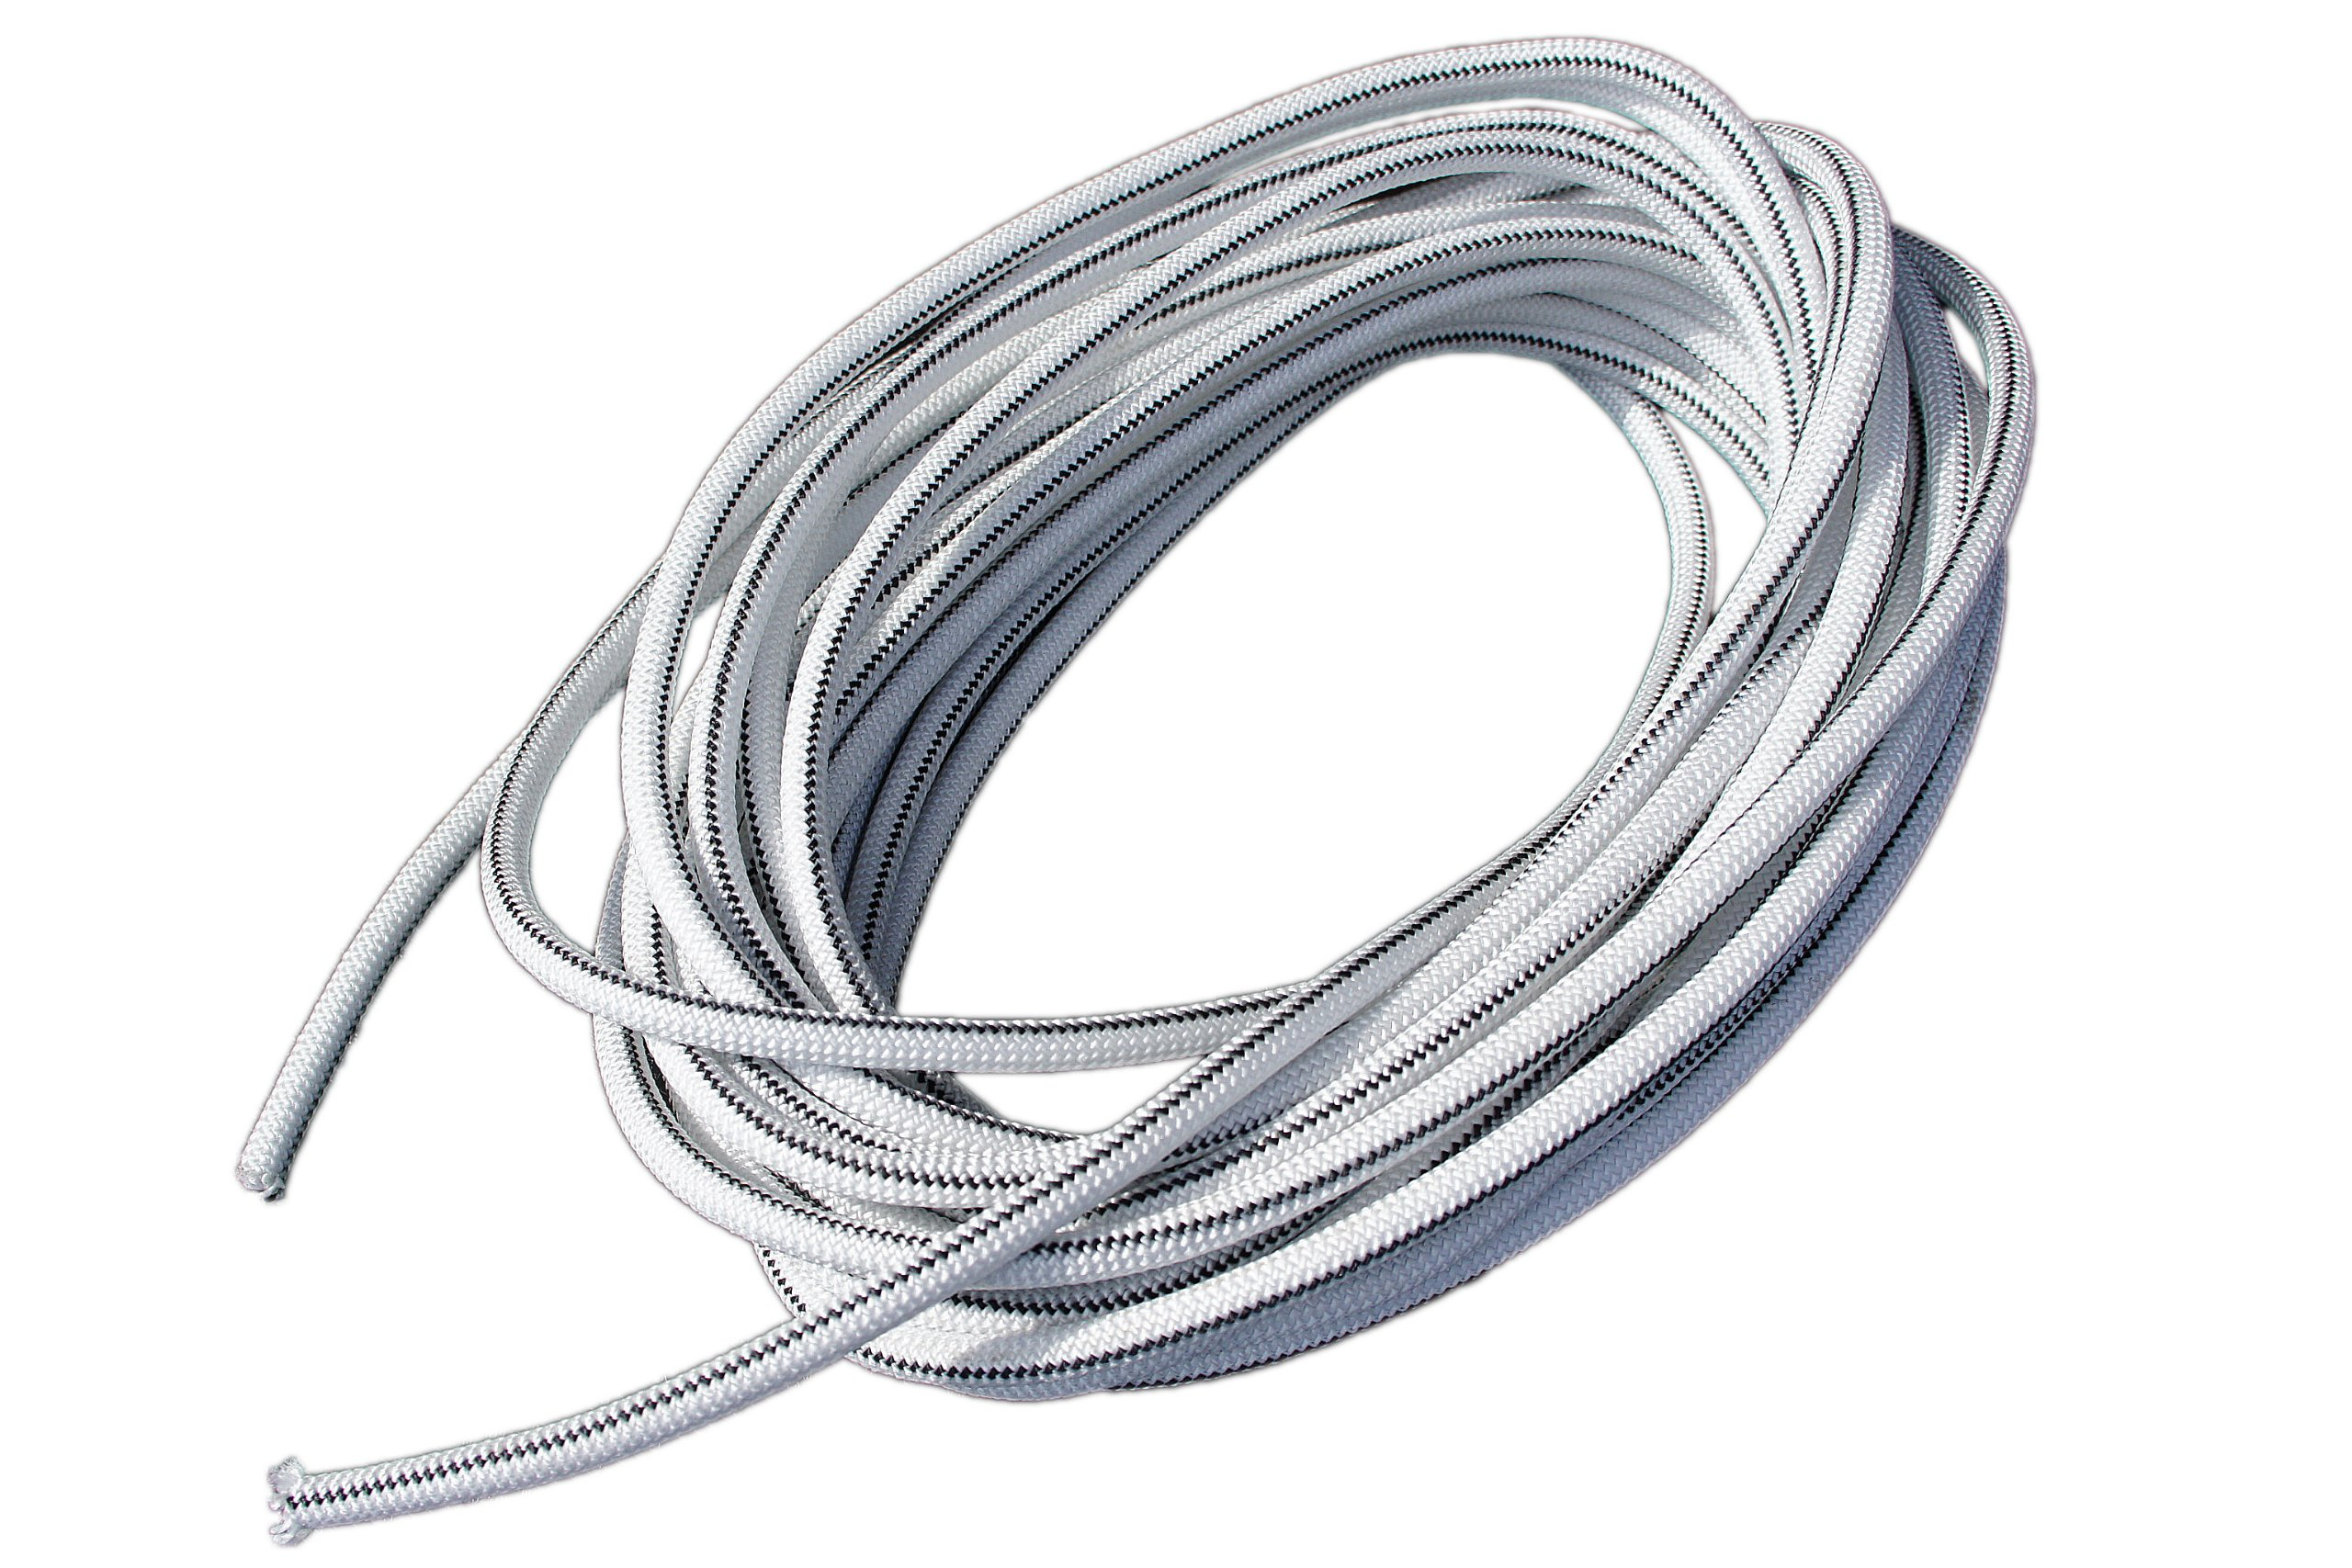 1/4'' x 100' White Shock Bungee Rubber Rope Cord - Woven Jacketed by Harriscos LLC